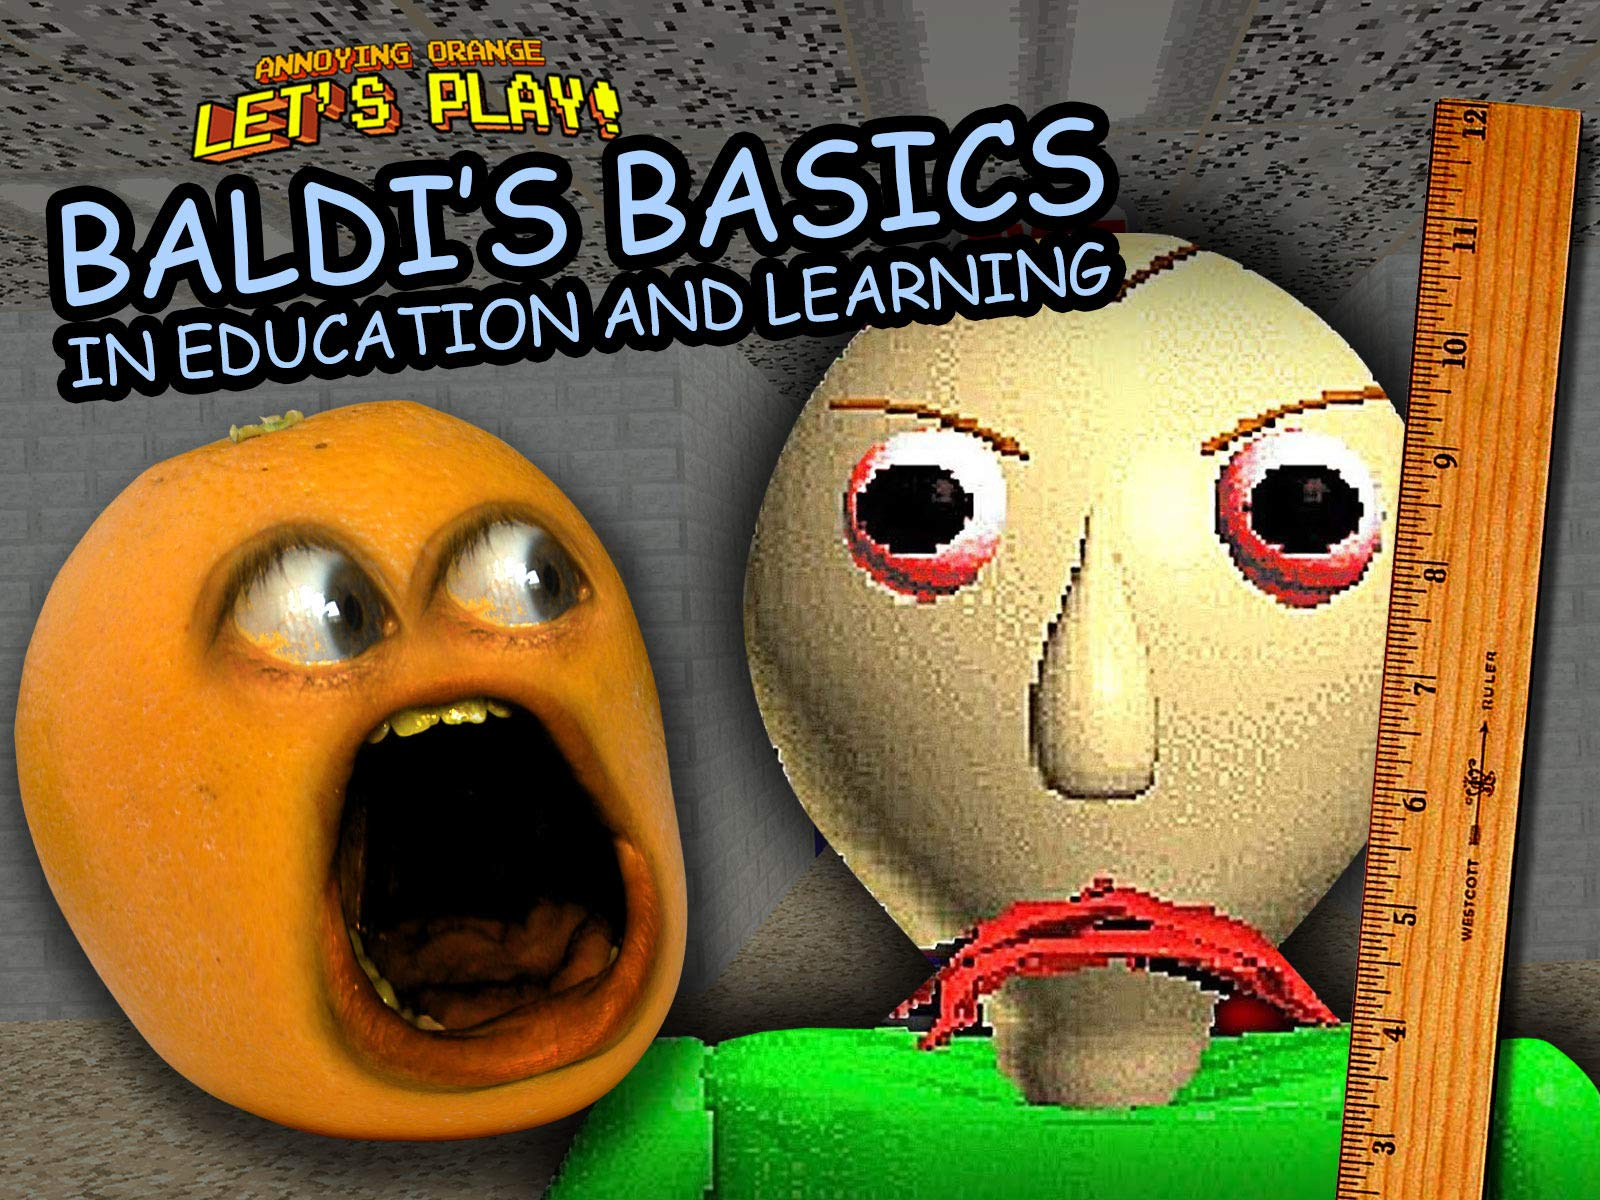 Clip: Annoying Orange Let's Play Baldi's Basics in Education and Learning - Season 1